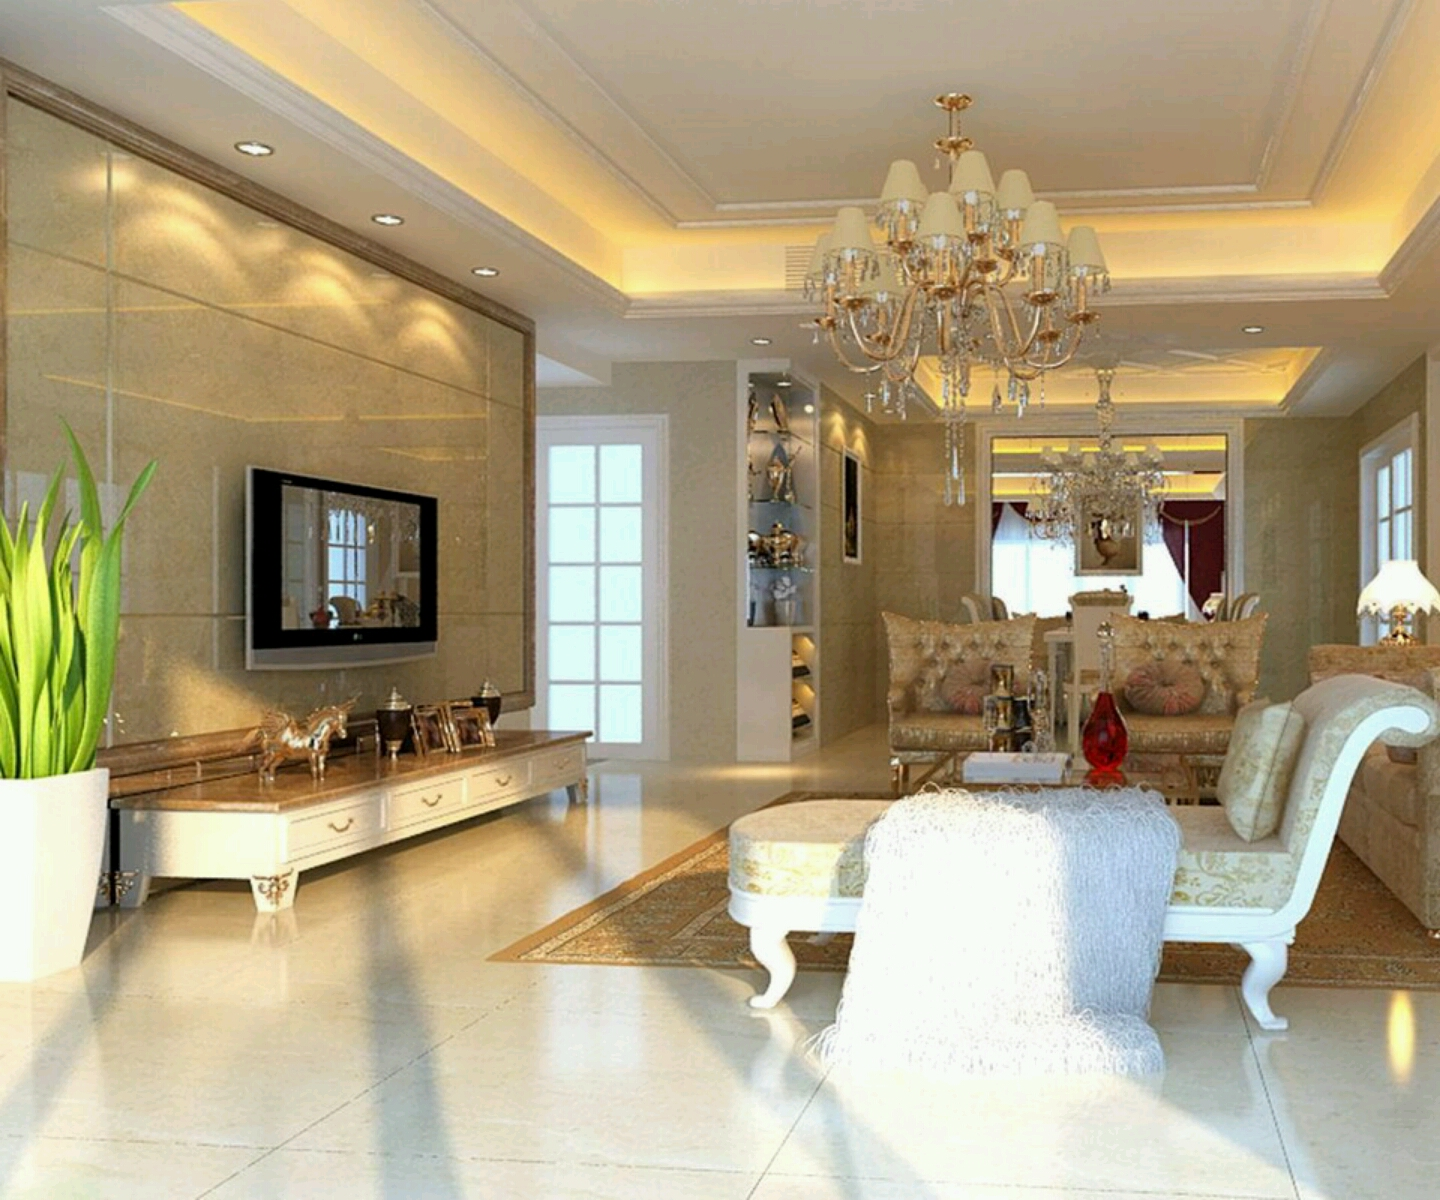 House Inside Design: Luxury Home Interior